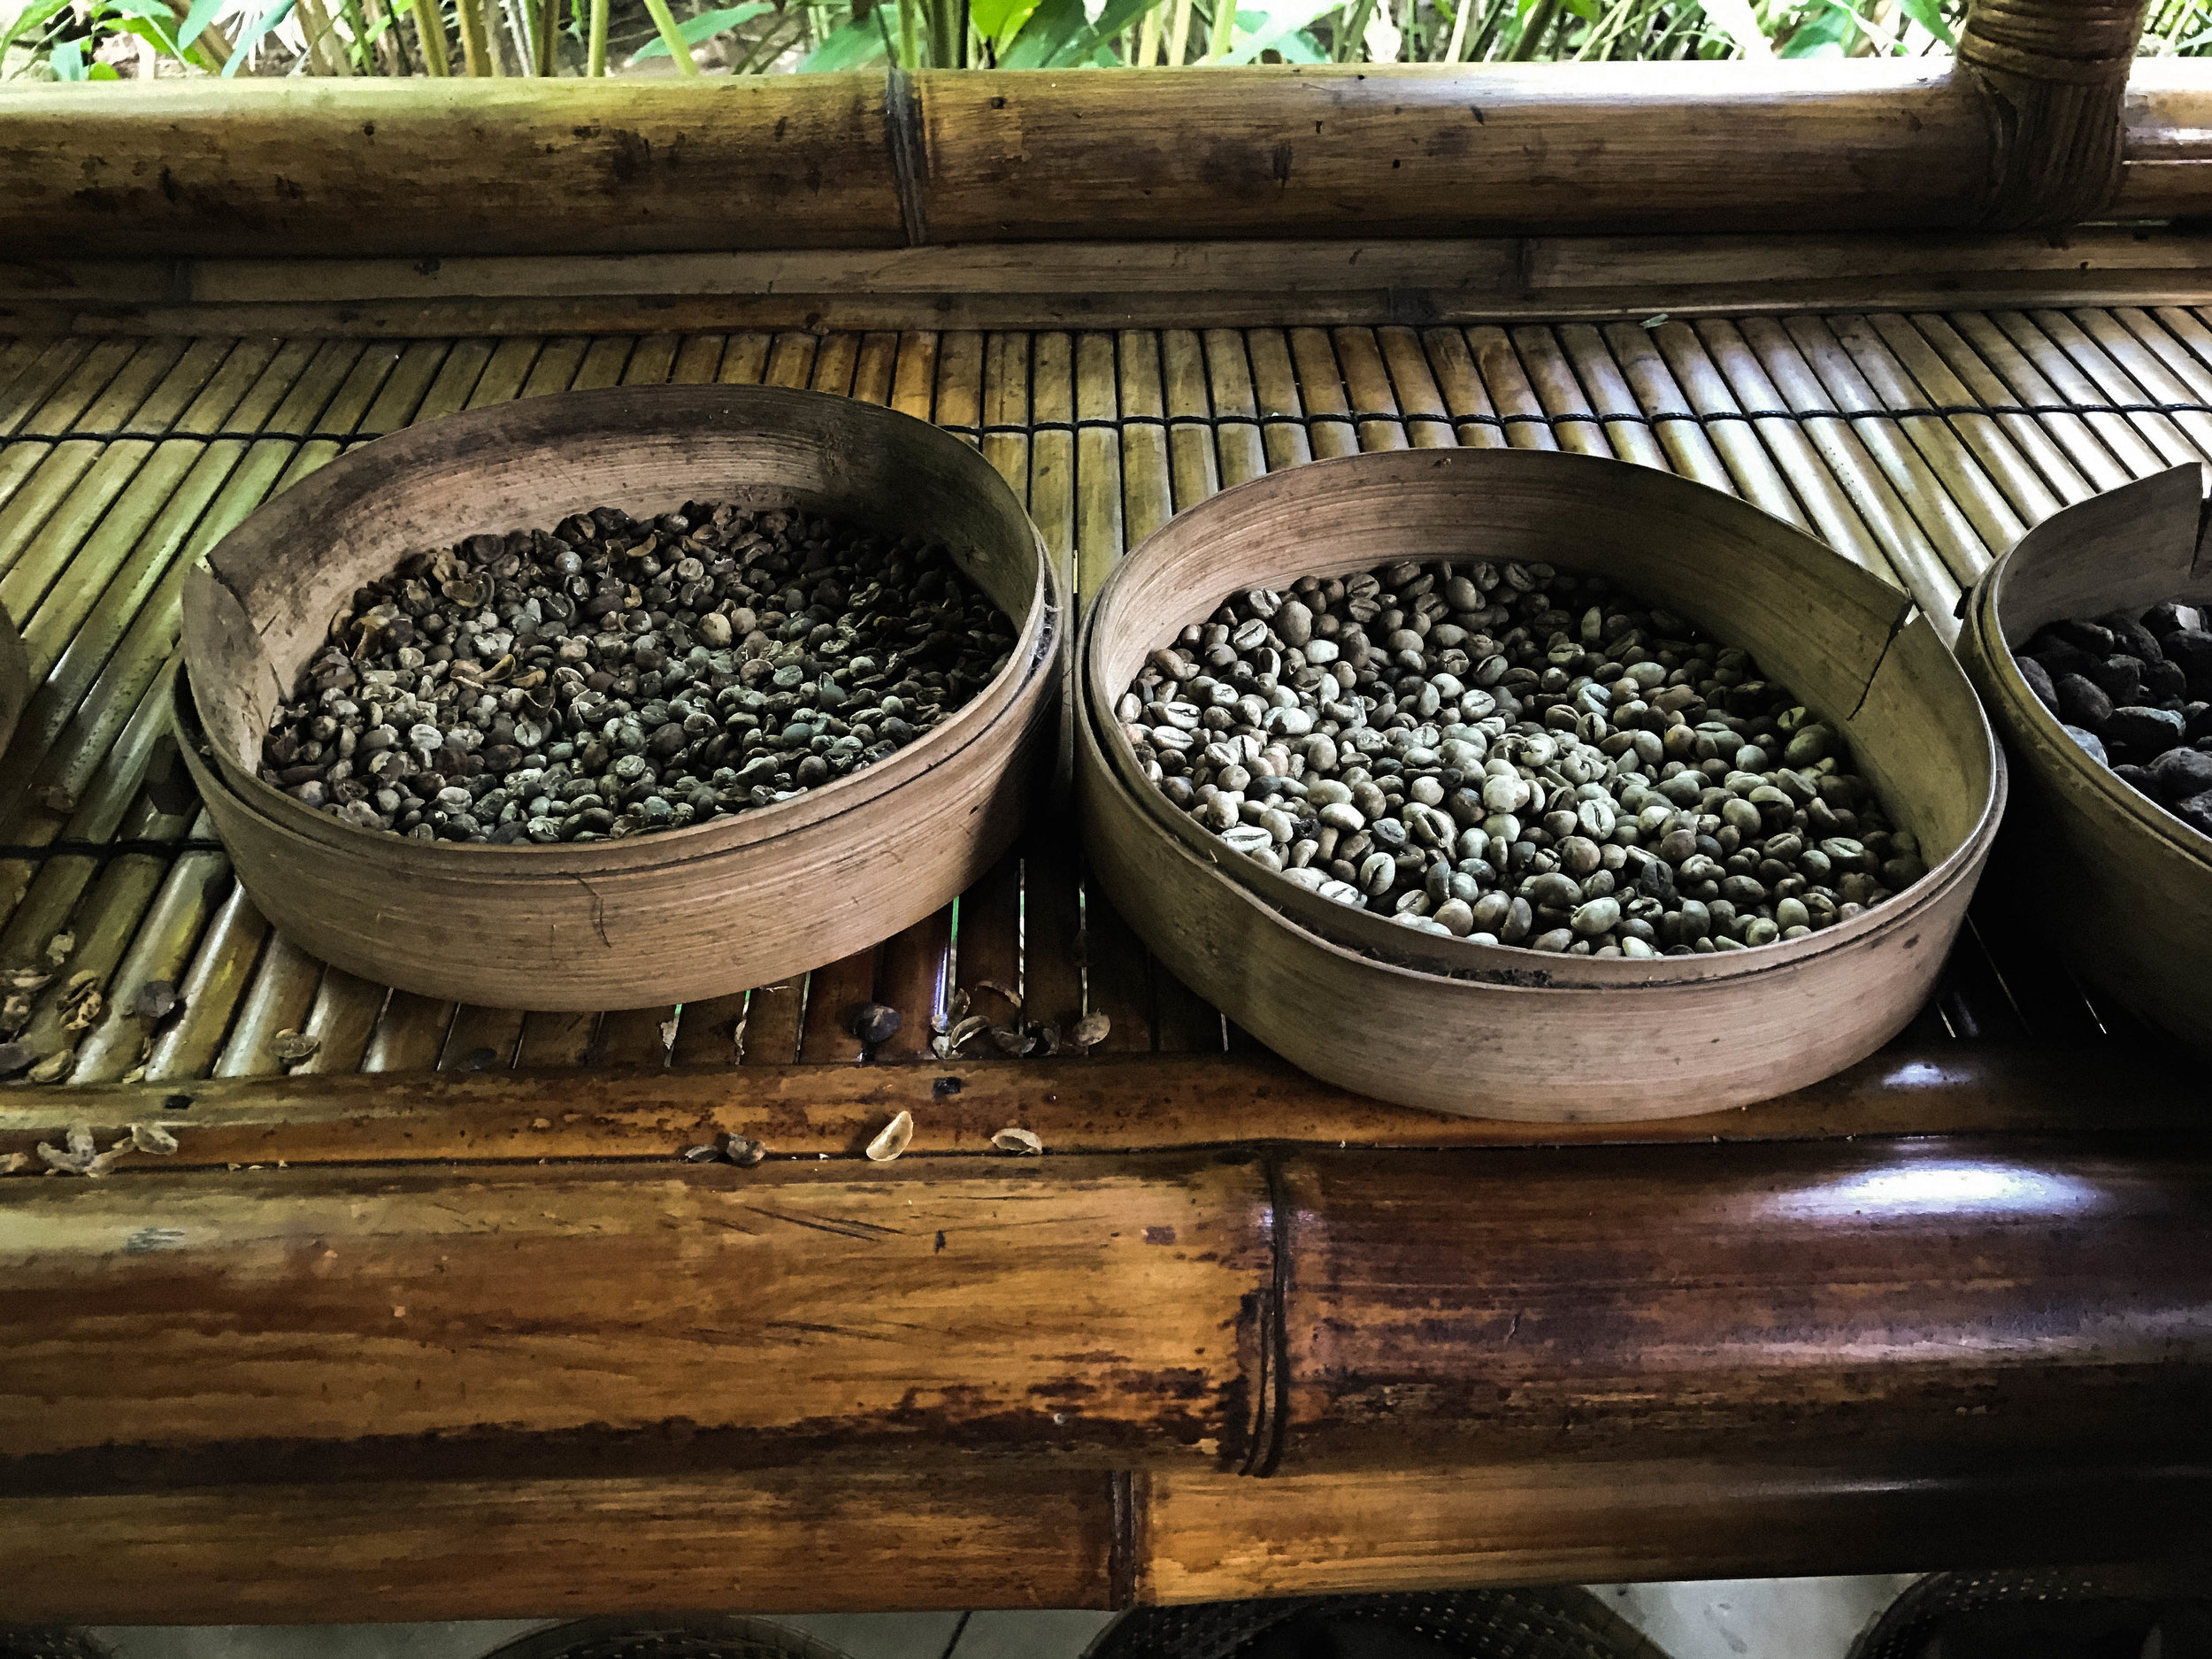 Trying Luwak Coffee in Bali, Indonesia